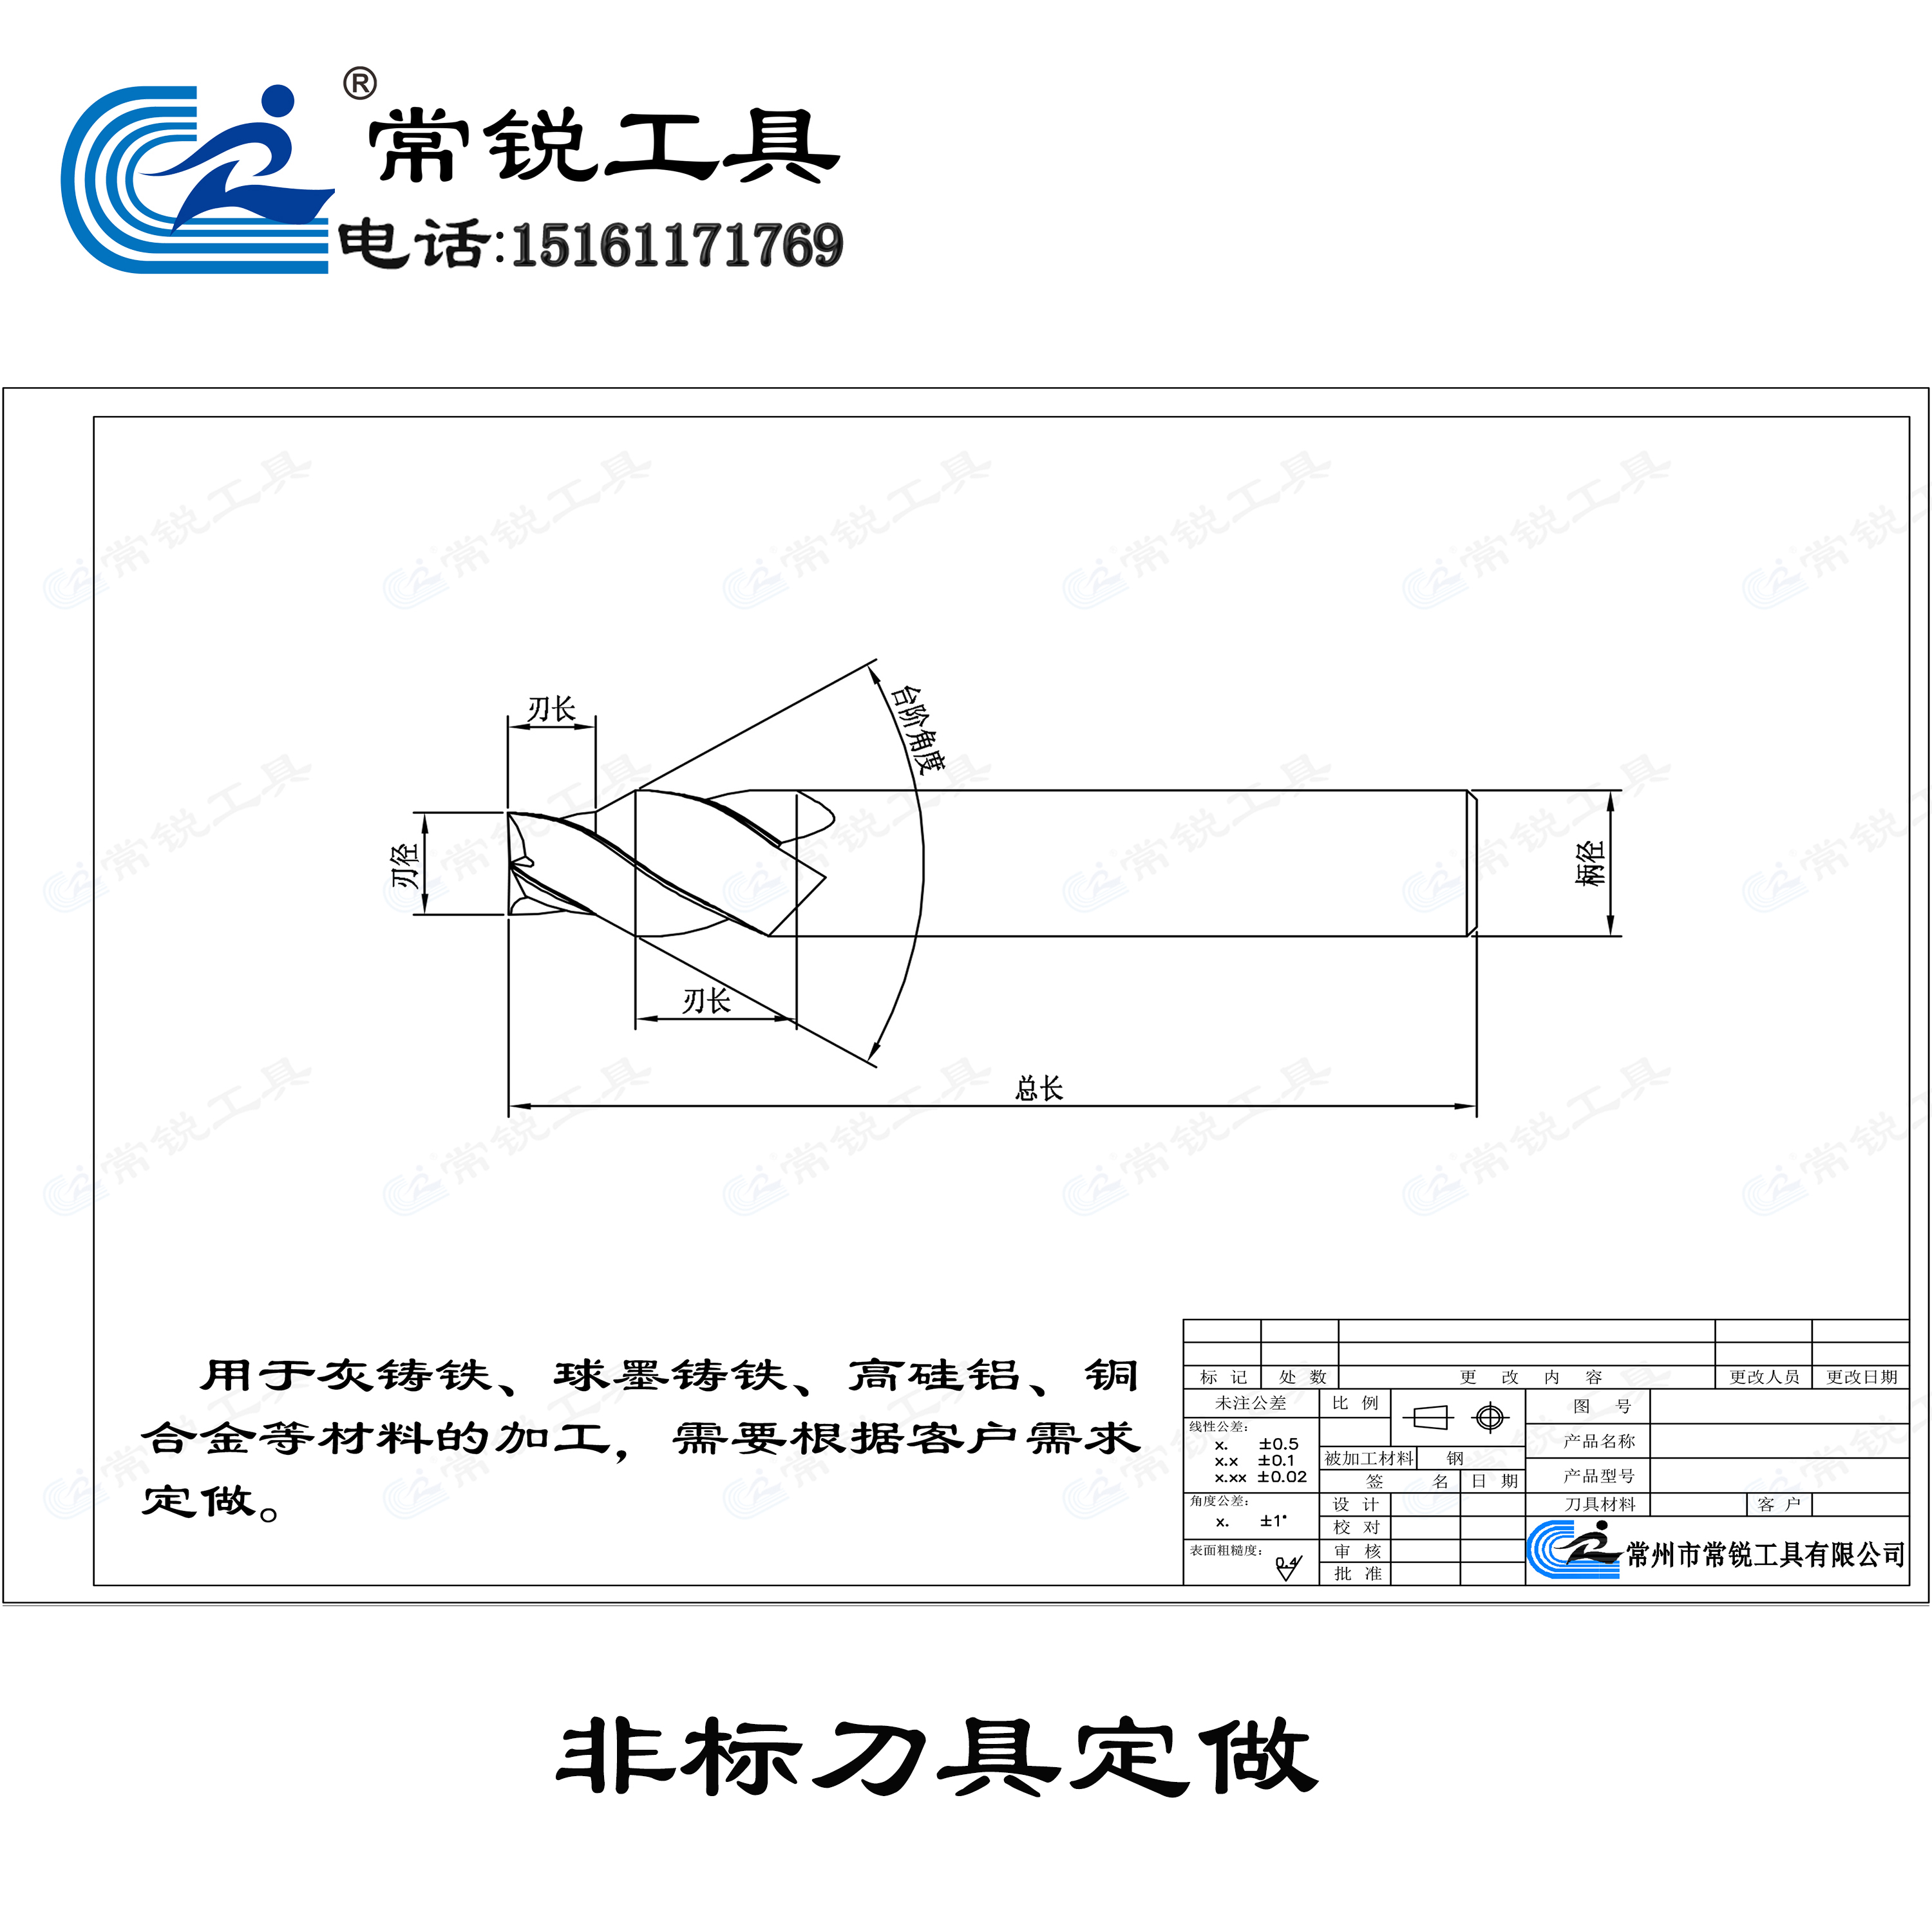 2 blade step milling cutter, customized all kinds of carbide forming cutter non-standard cutter, all kinds of bit, milling cutter reamer